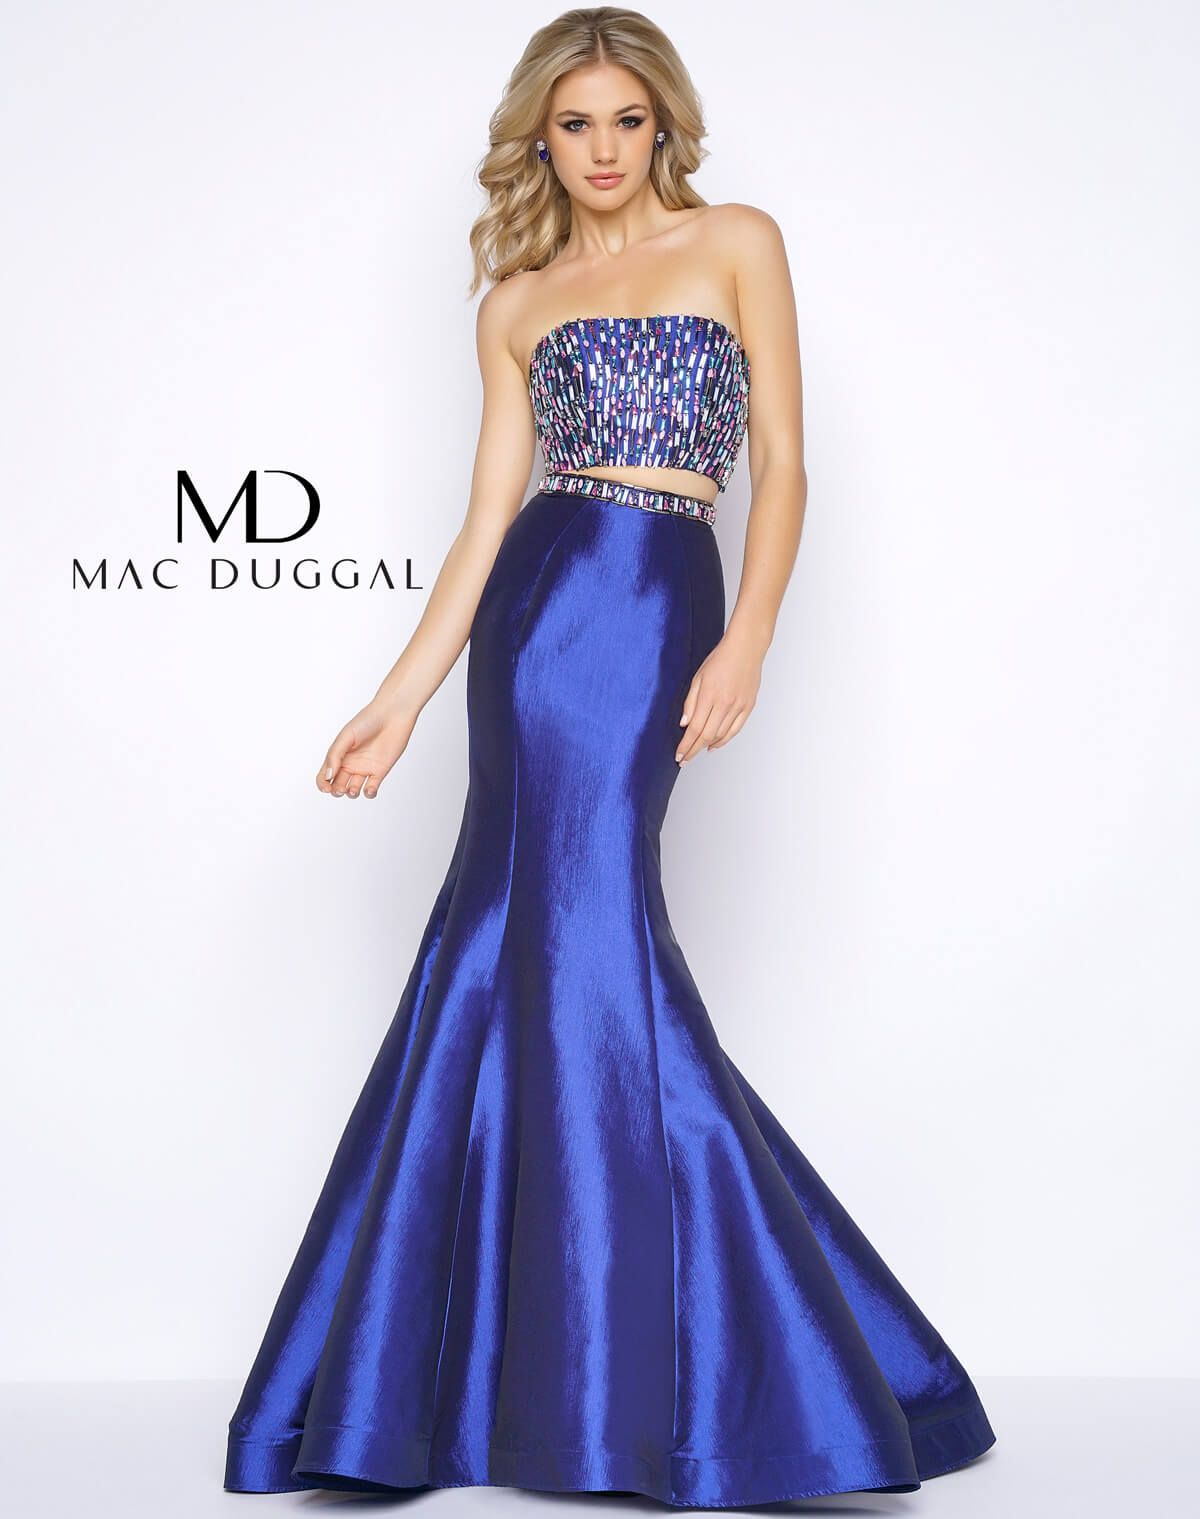 Two Piece Mermaid Prom Dress - back